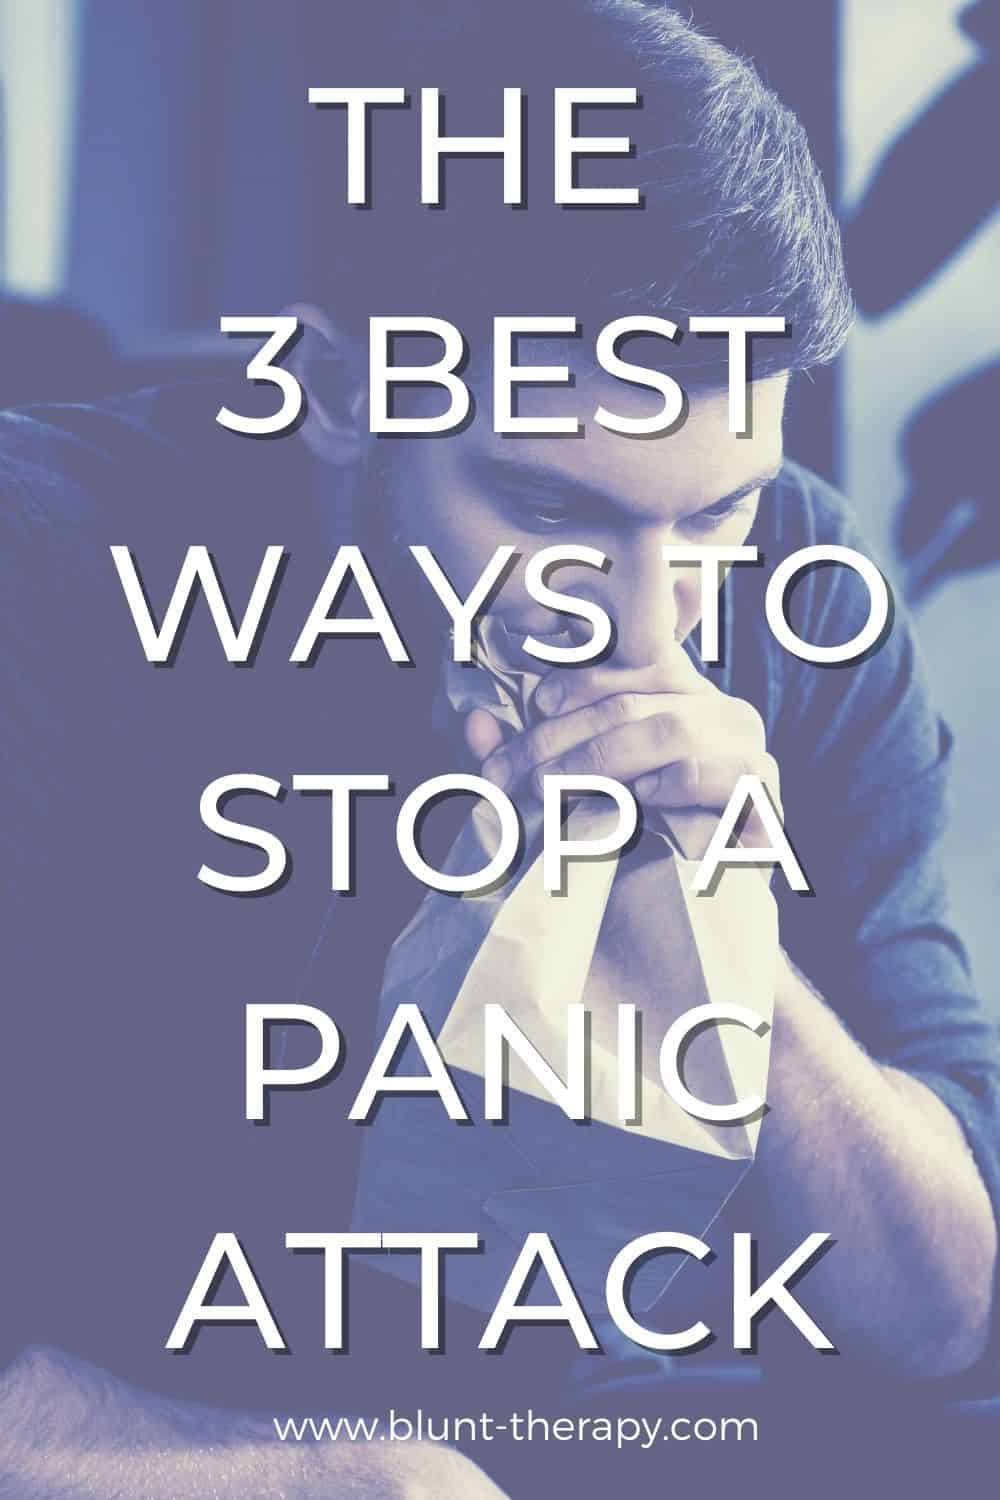 3 Simple Ways To Stop A Panic Attack (Without Medication)